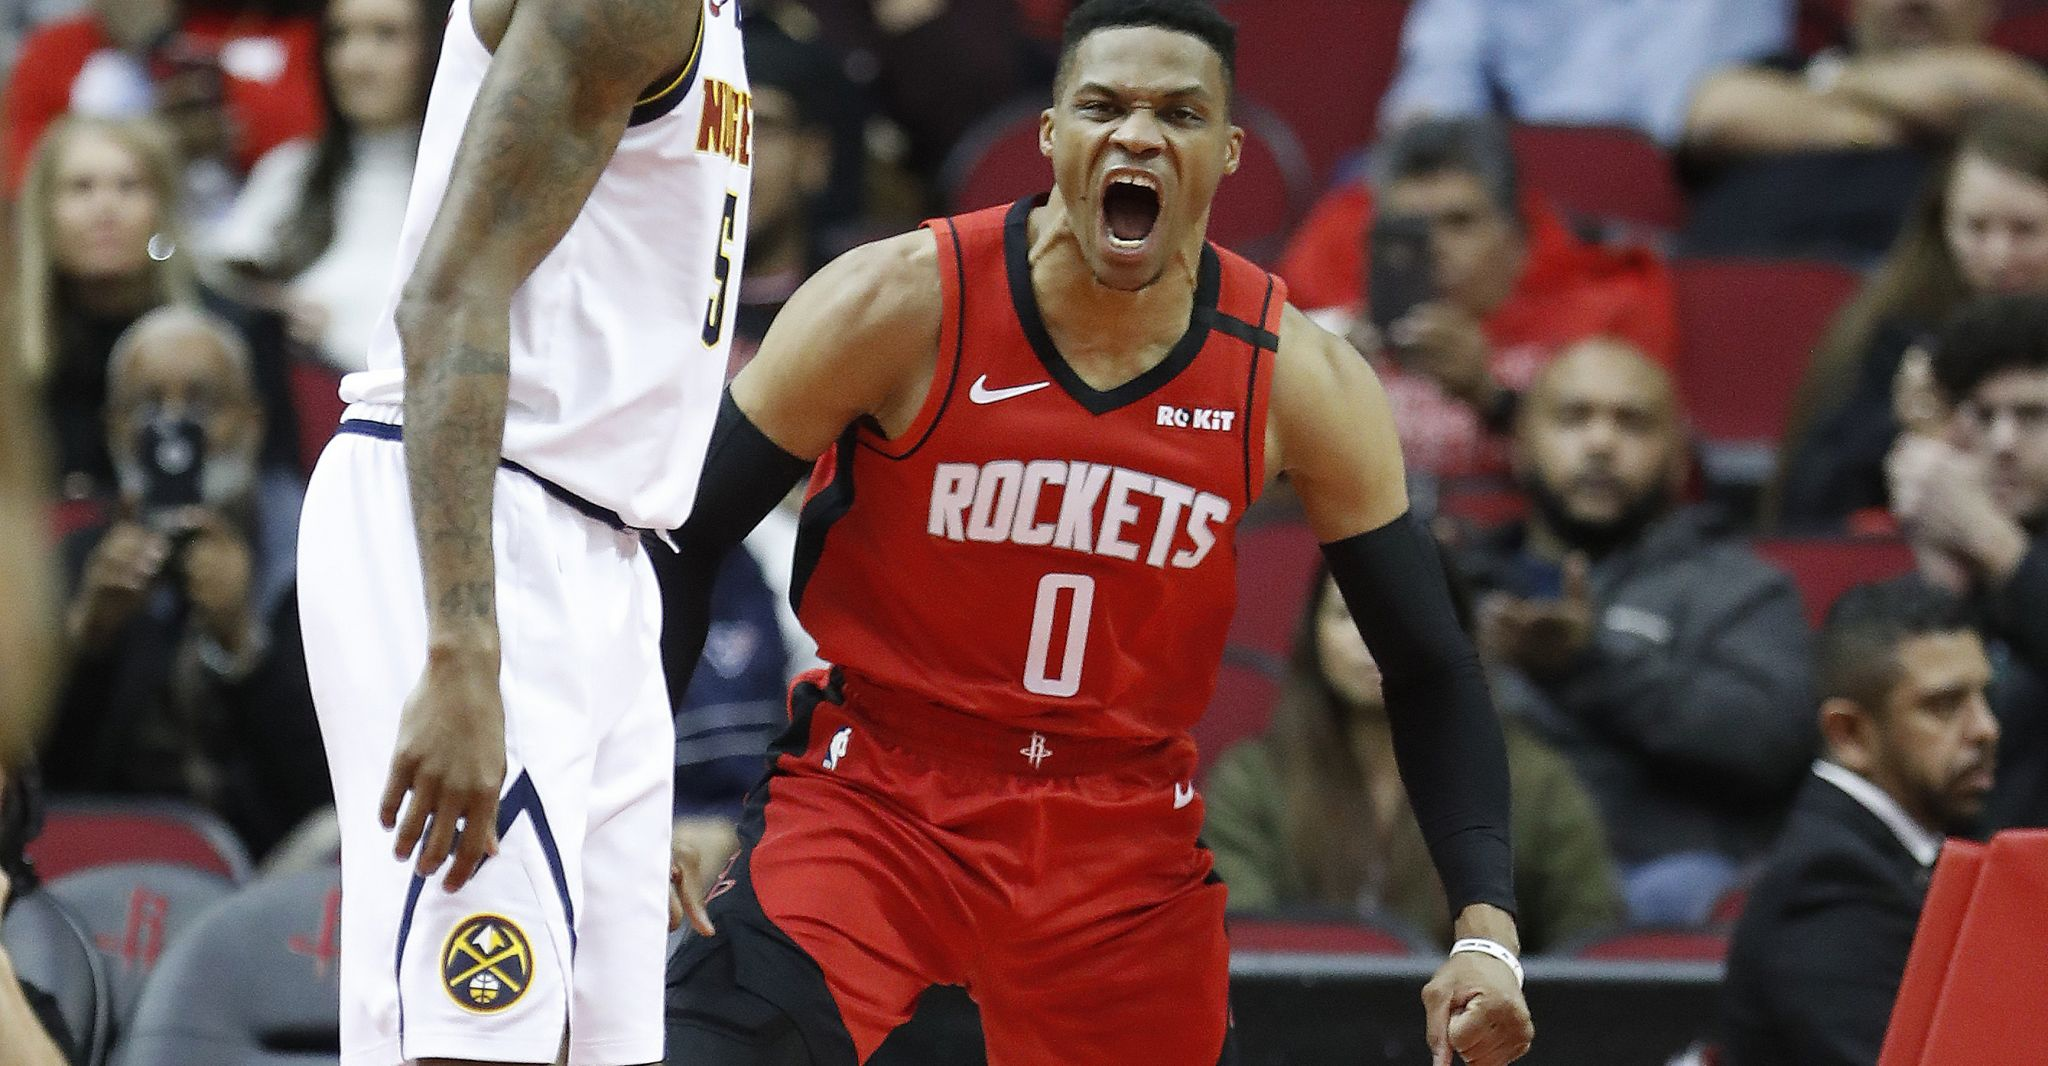 Scouting report: Rockets at Nuggets